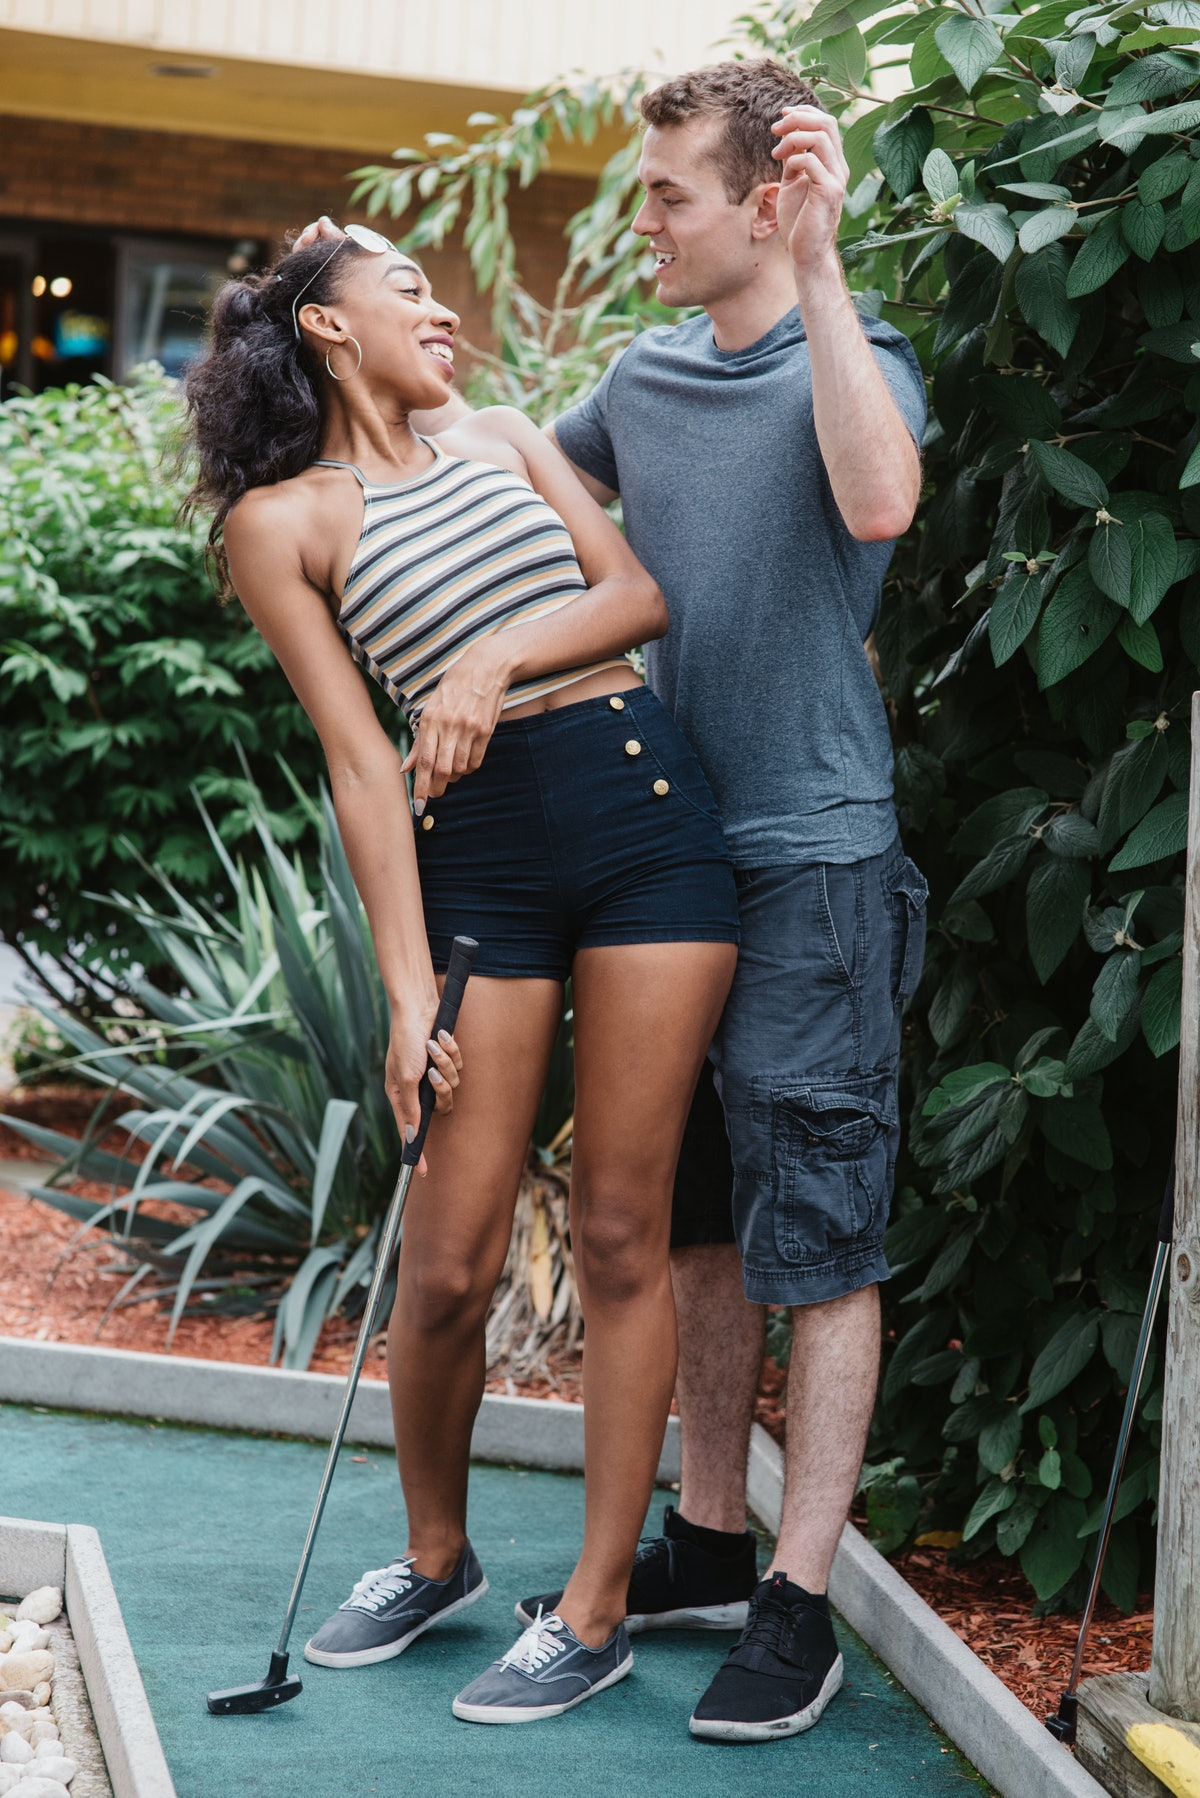 A young couple laughs while playing mini golf in the middle of summer.